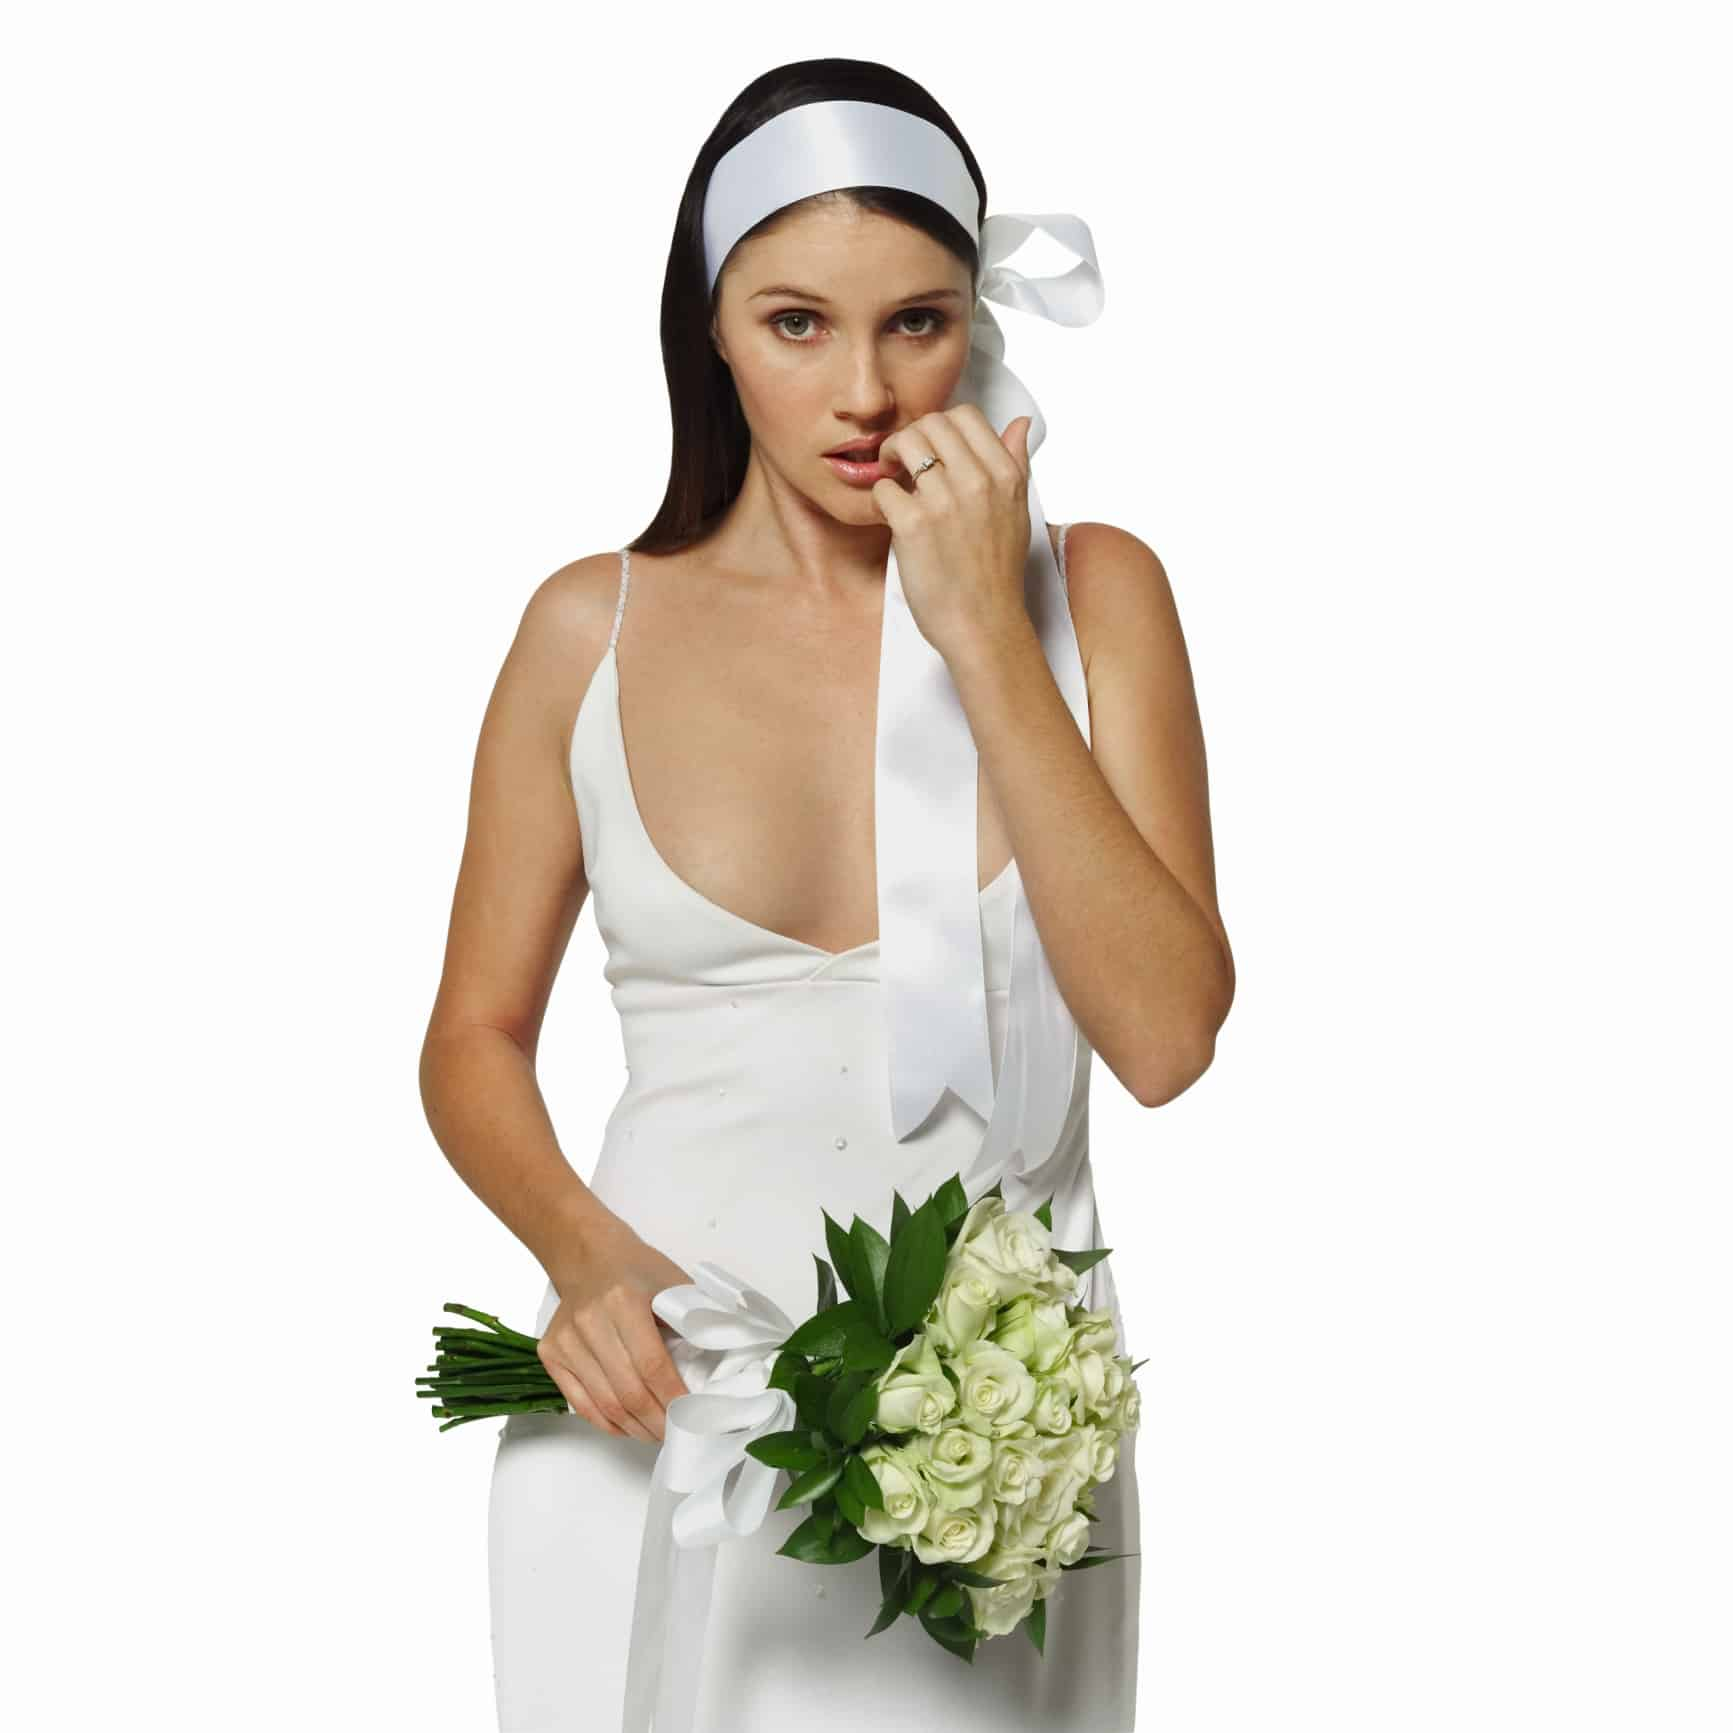 front view portrait of a worried bride holding a bouquet